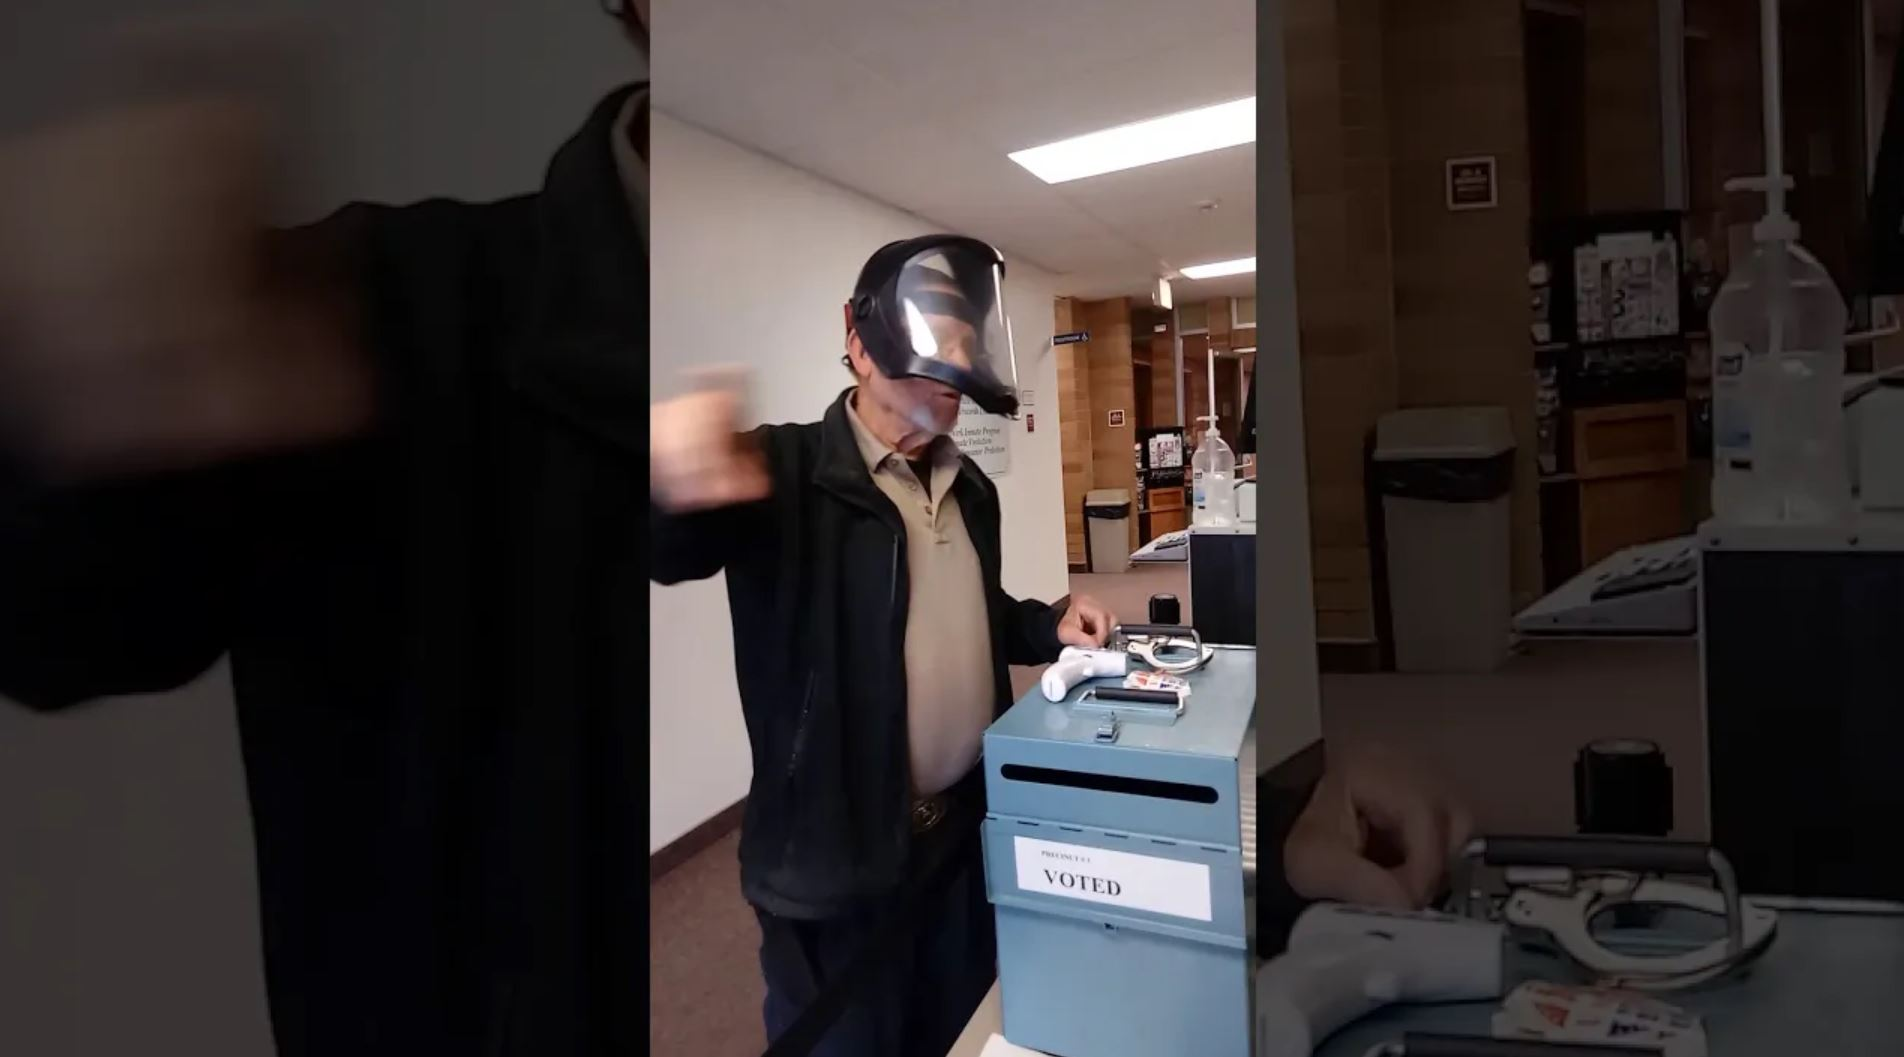 """You Cannot Vote without a Mask"" – Payette County Idaho (Videos)"